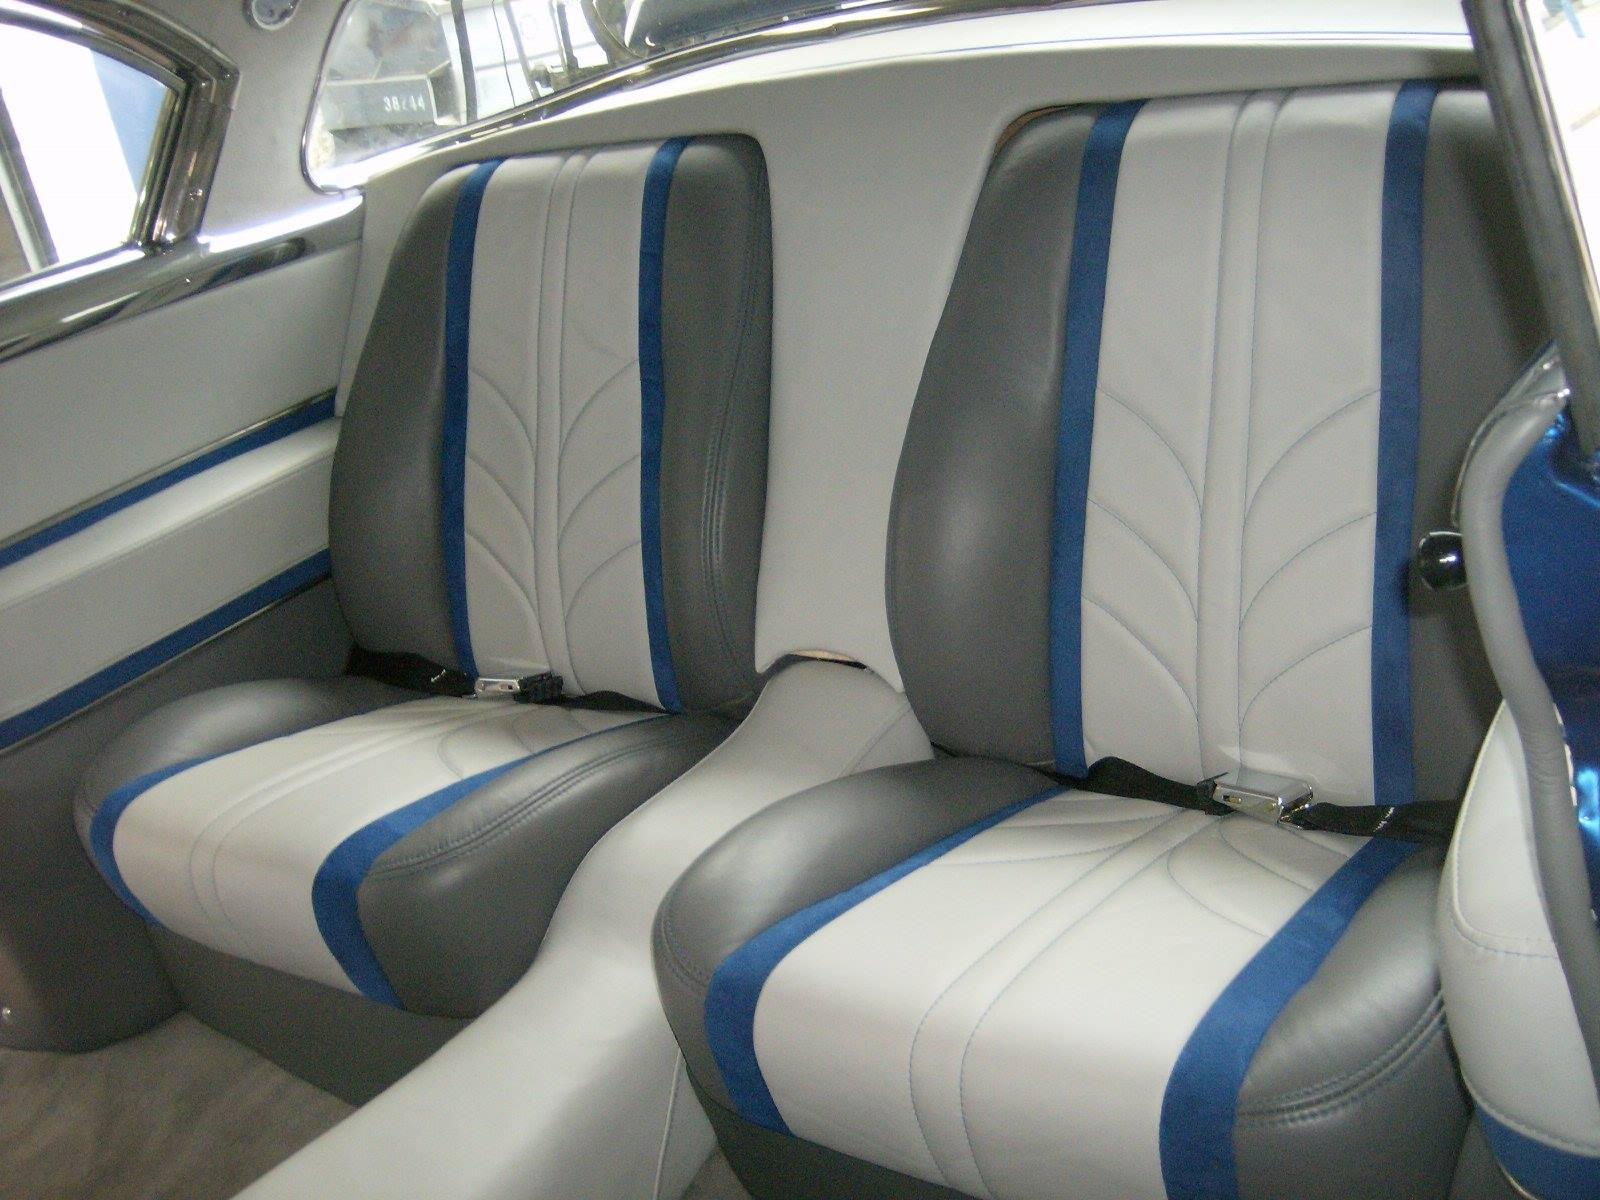 Upholstery - How to customize your car interior ...